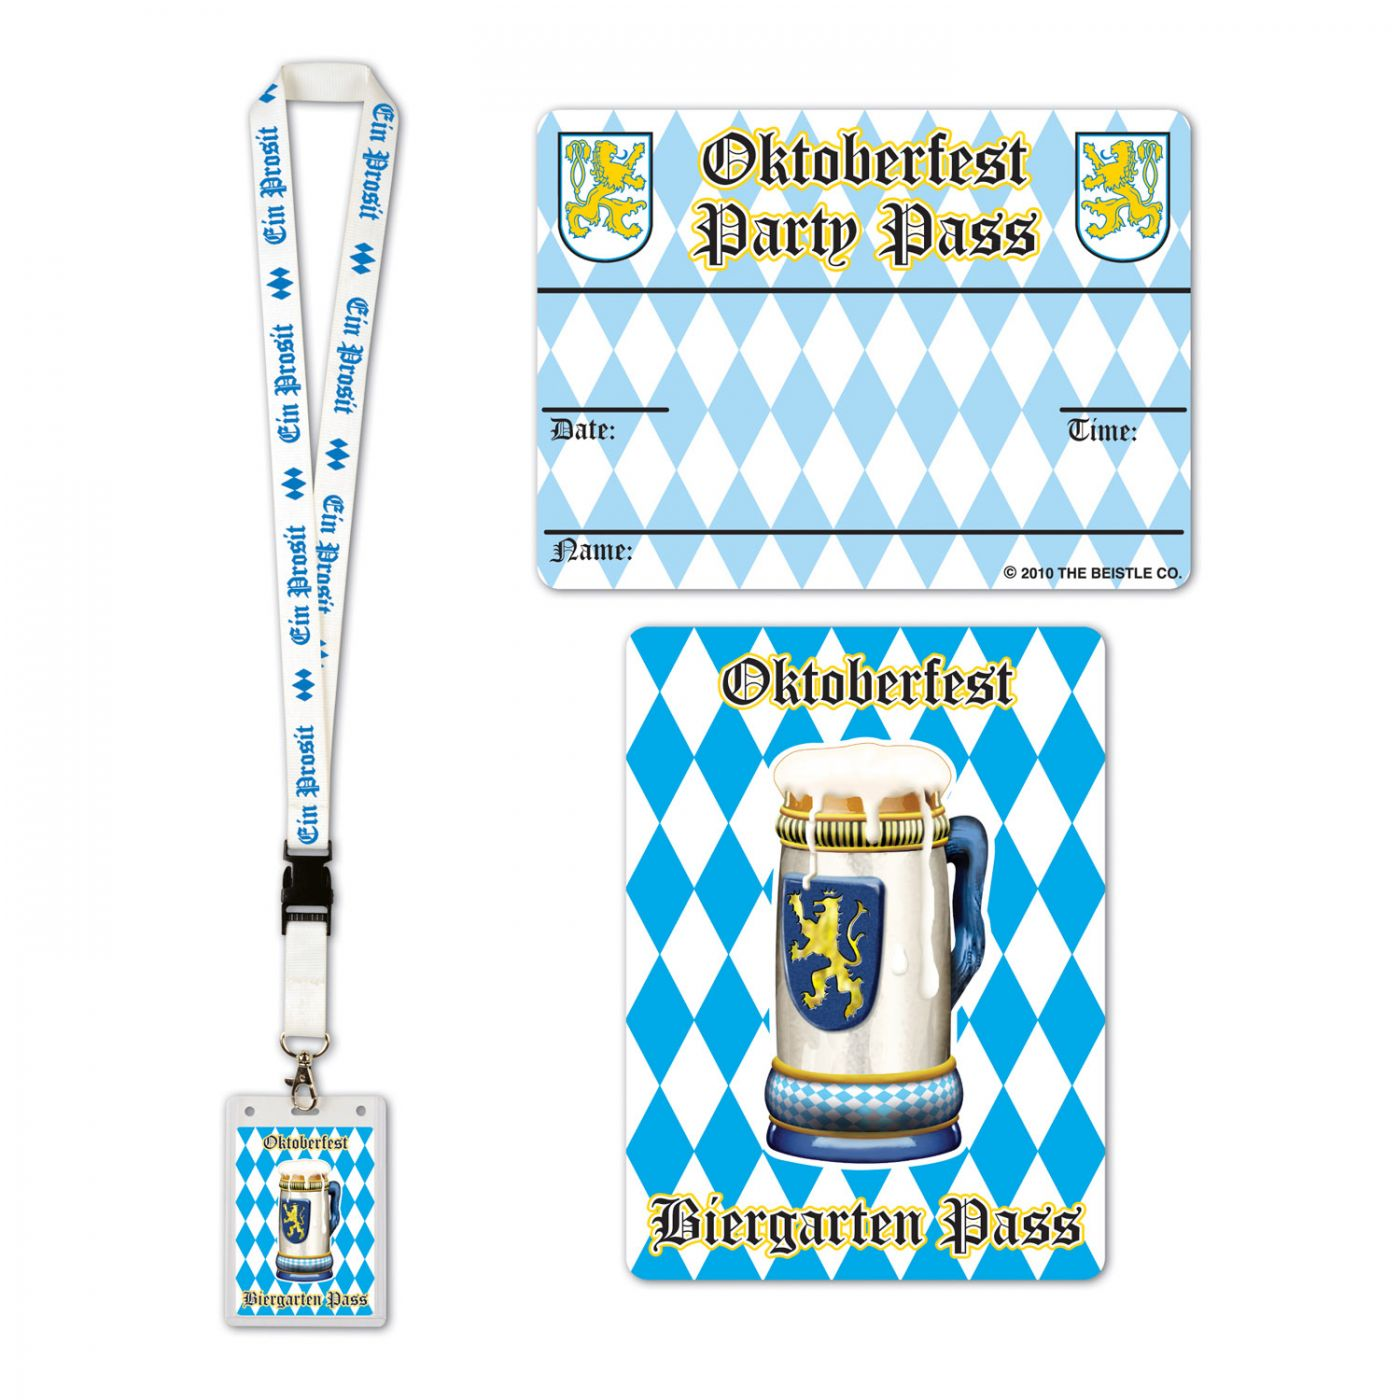 Oktoberfest Party Pass image